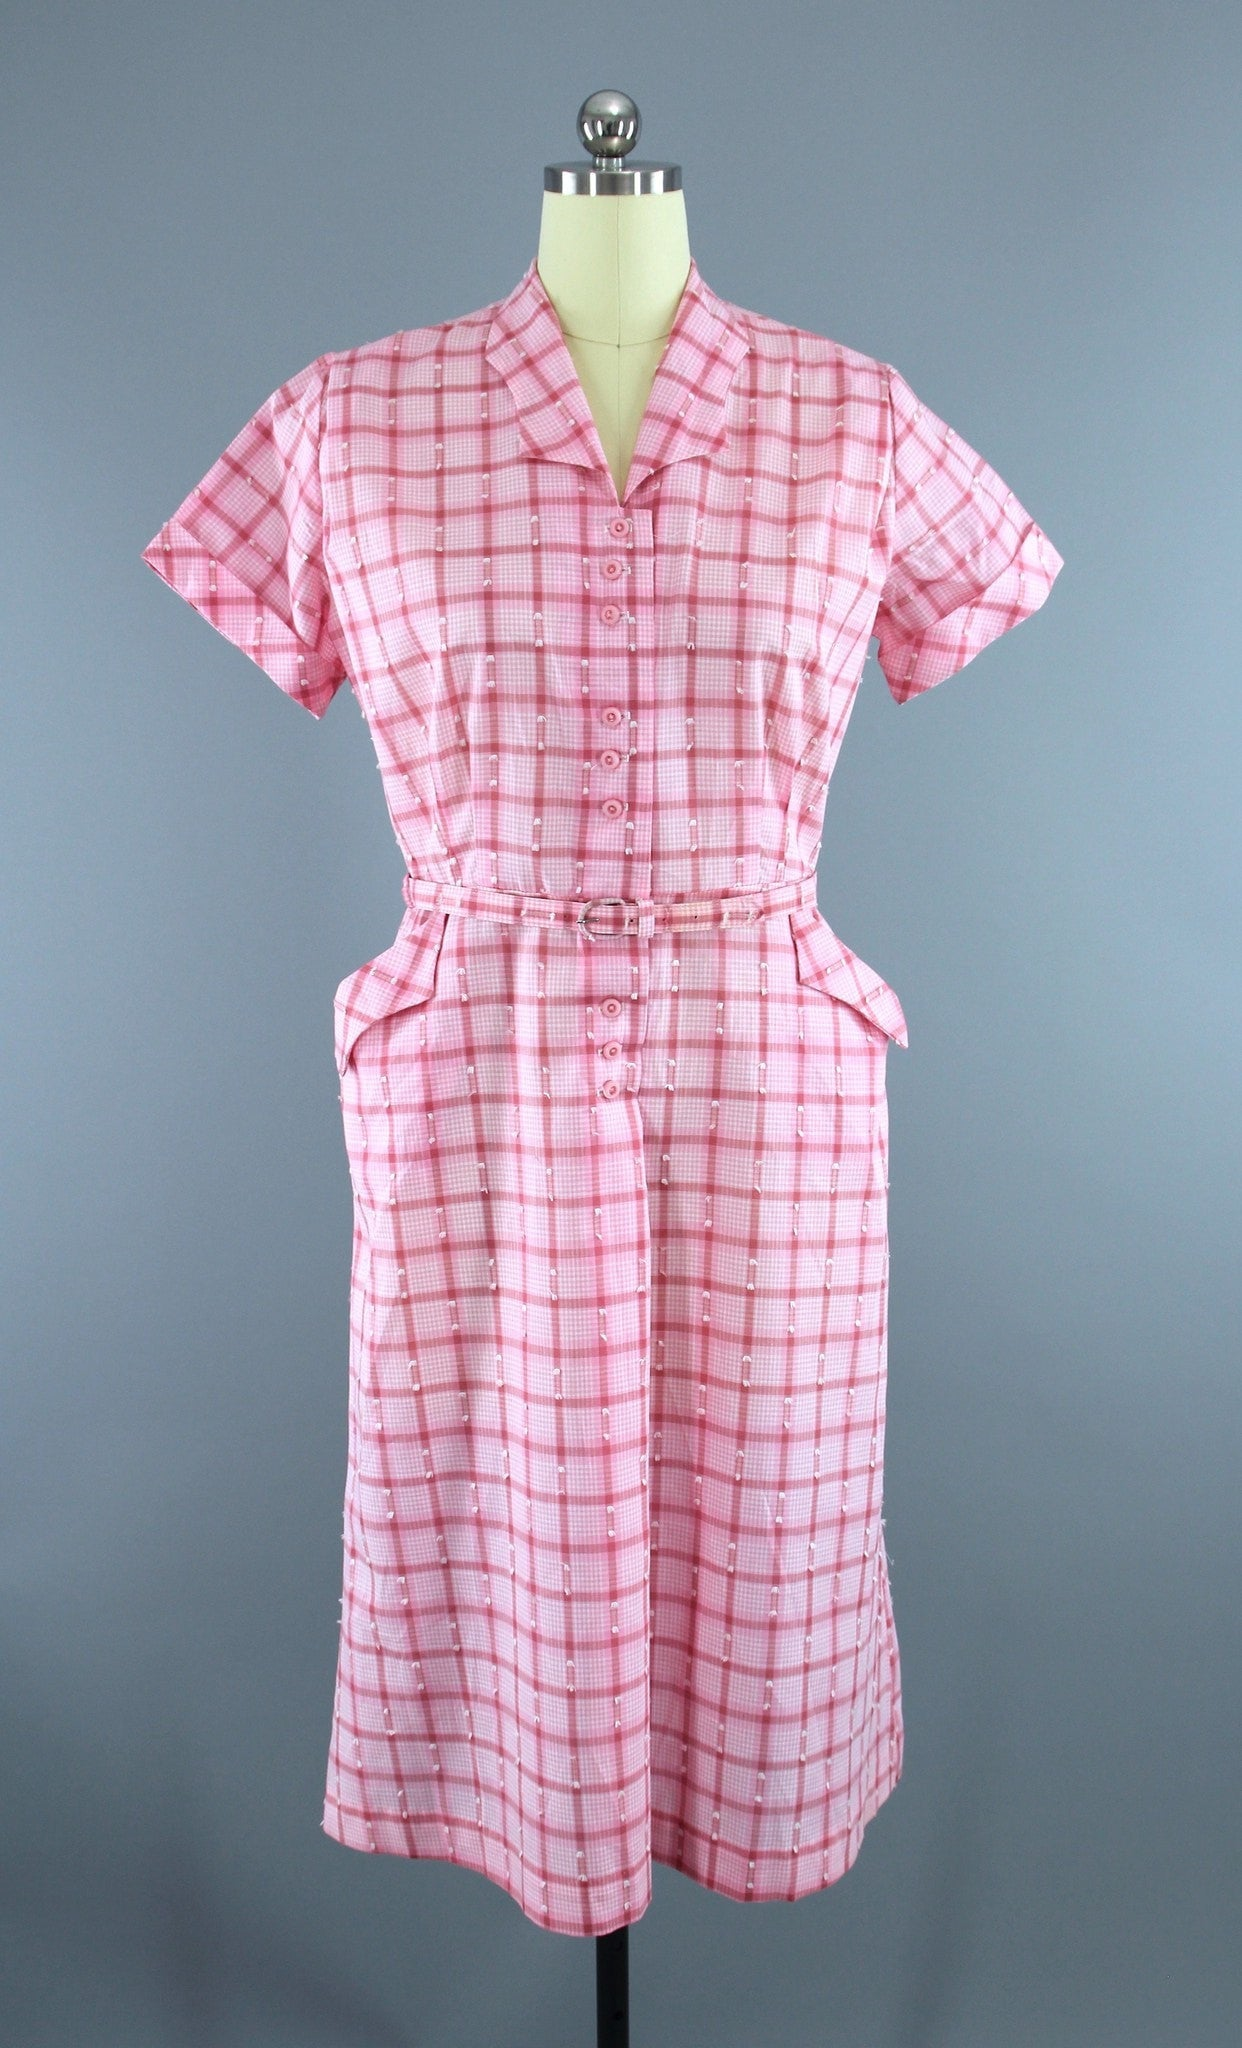 Vintage 1950s Dan River Day Dress / Pink & White Checkered Cotton Dress ThisBlueBird